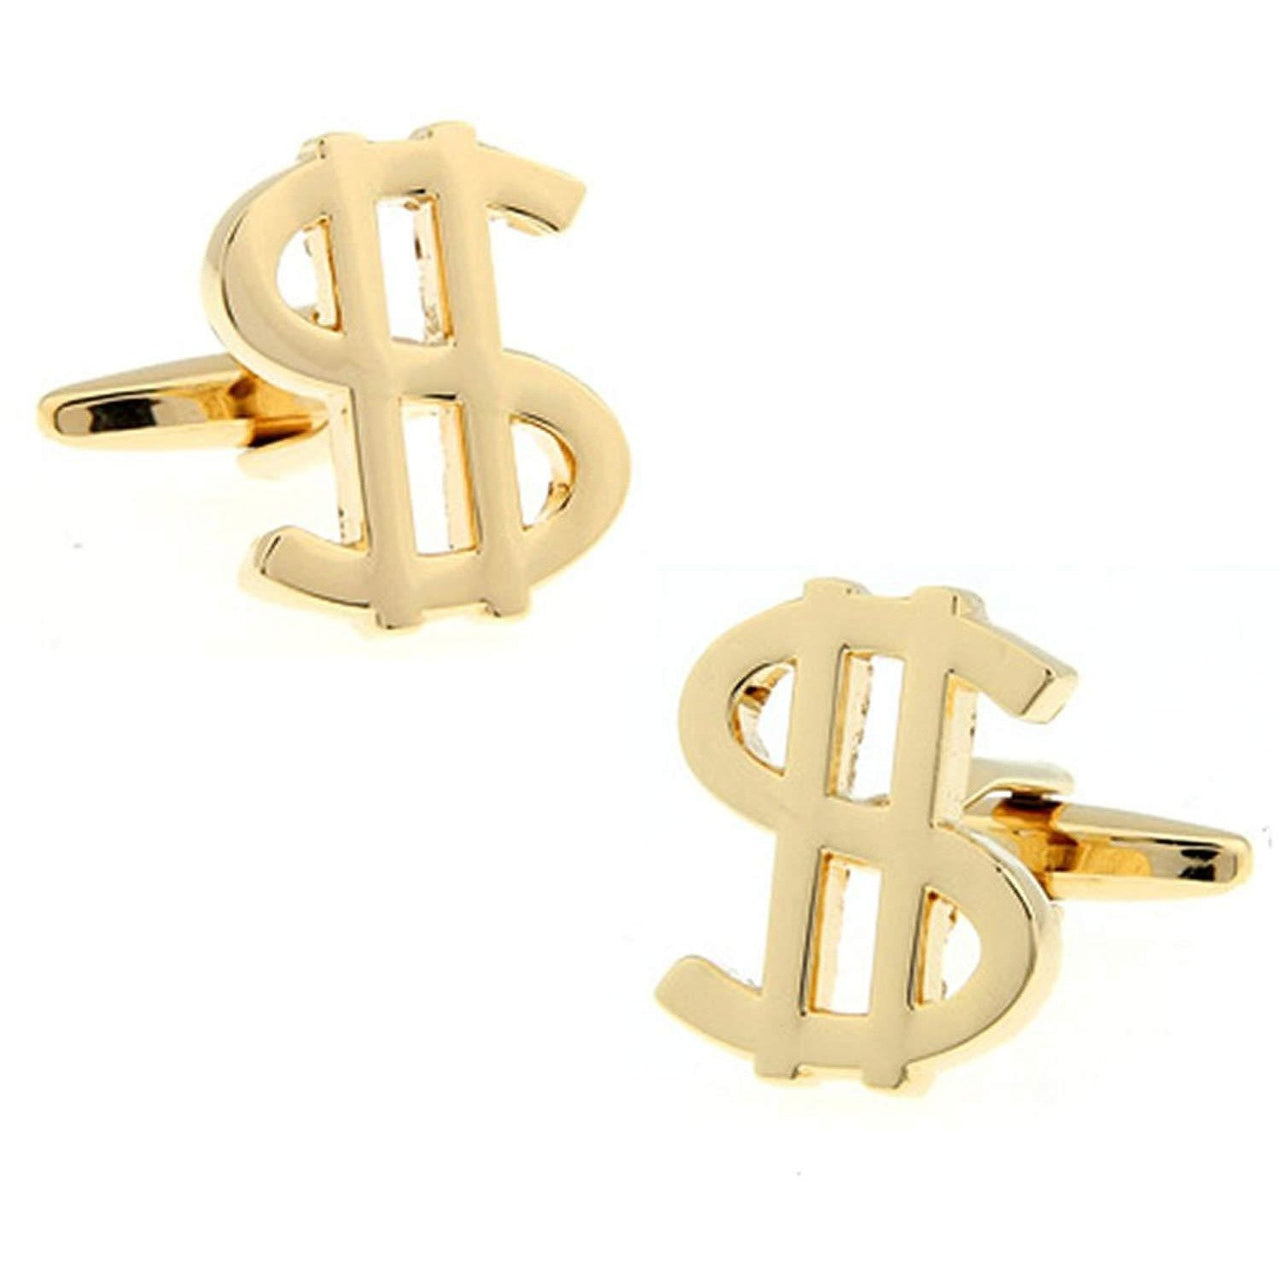 Gold Plated Dollar Cufflinks